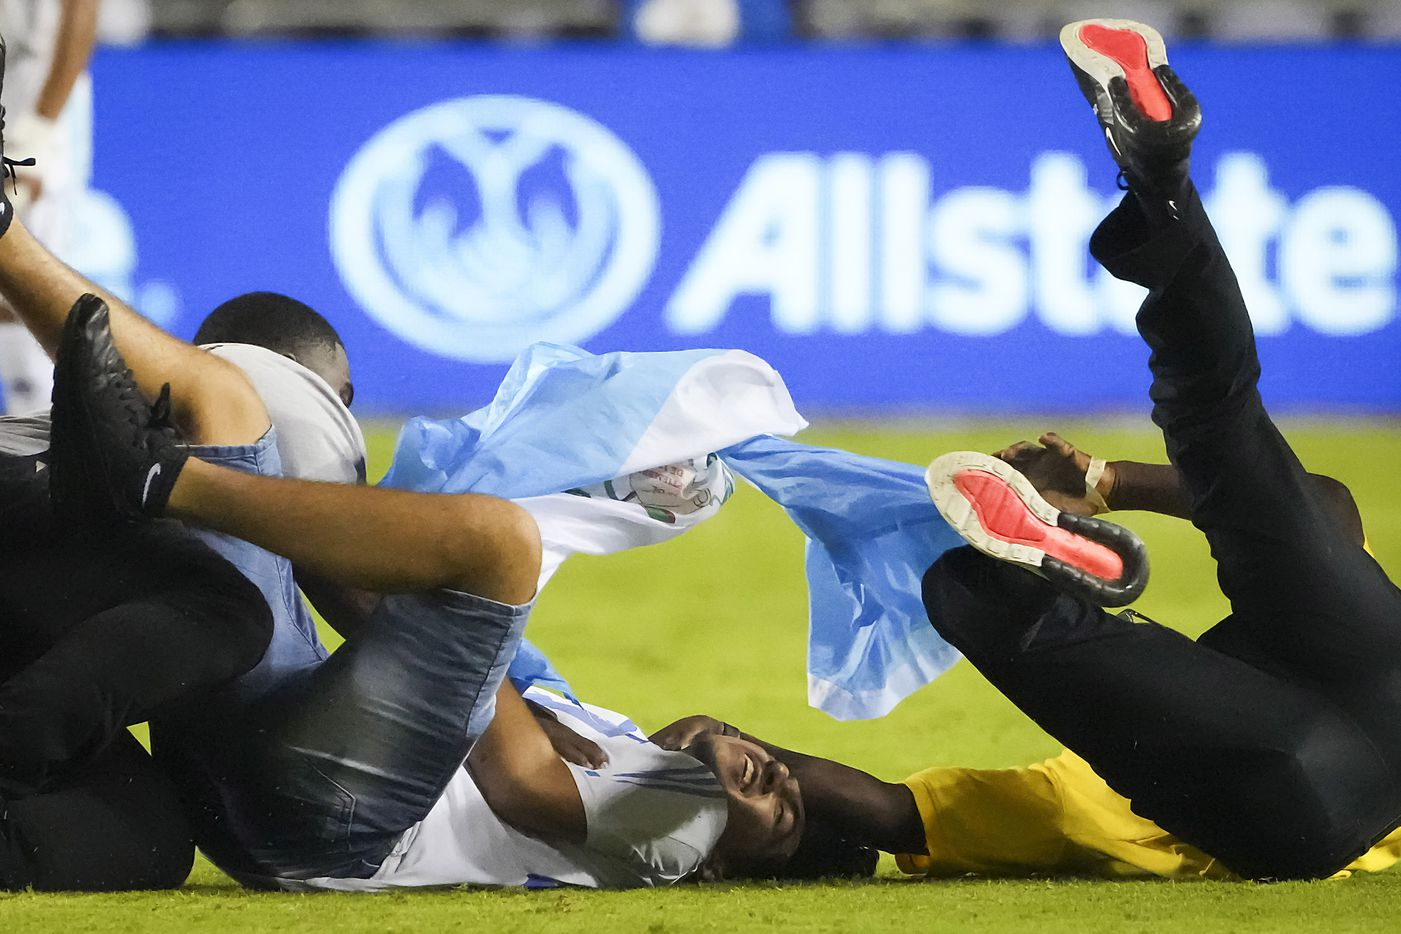 Security guards tackle a fan carrying a Guatemala flag as he runs during the second half of a CONCACAF Gold Cup Group A soccer match against Mexico at the Cotton Bowl on Wednesday, July 14, 2021, in Dallas.